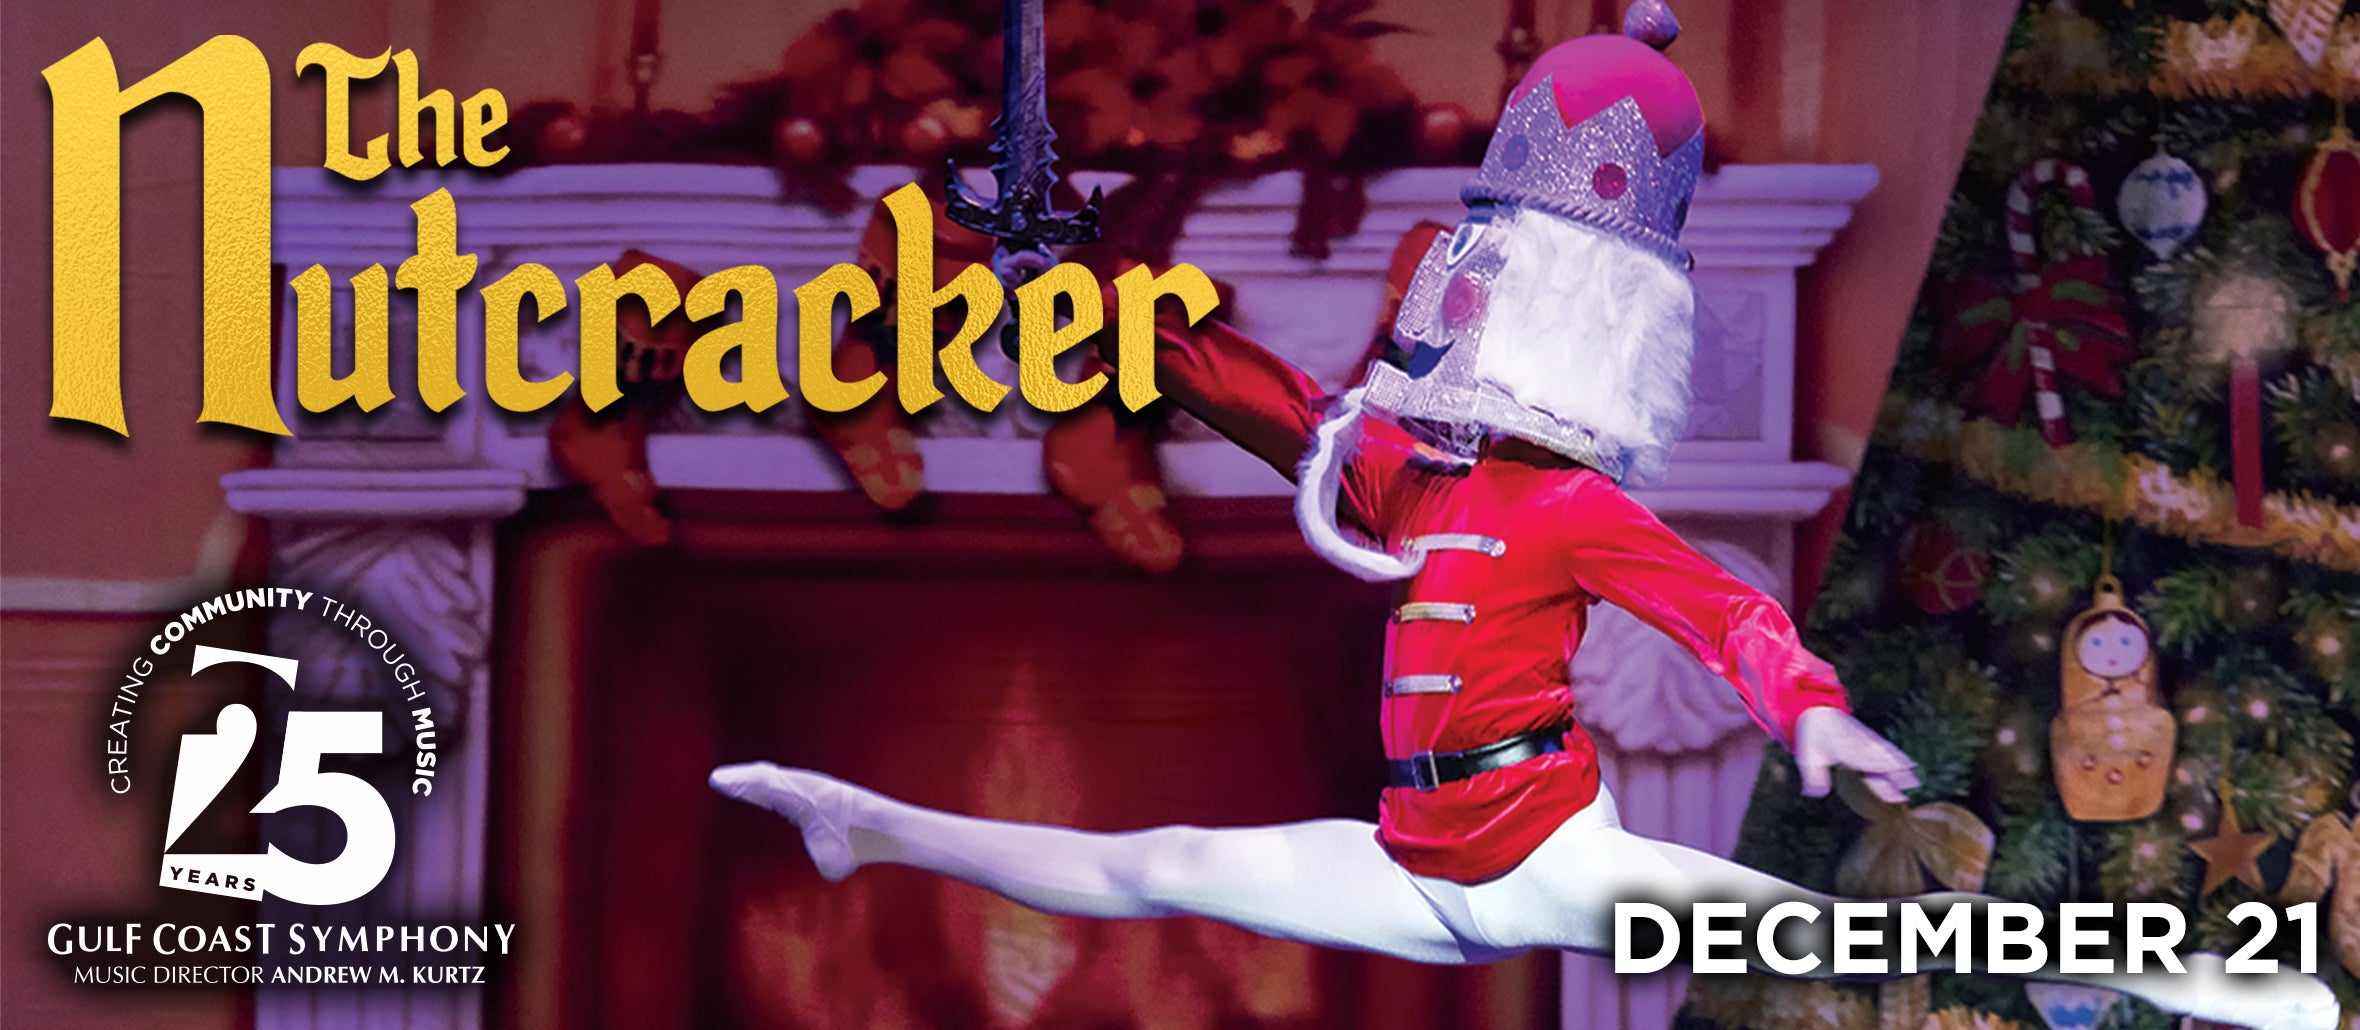 Gulf Coast Symphony: The Nutcracker